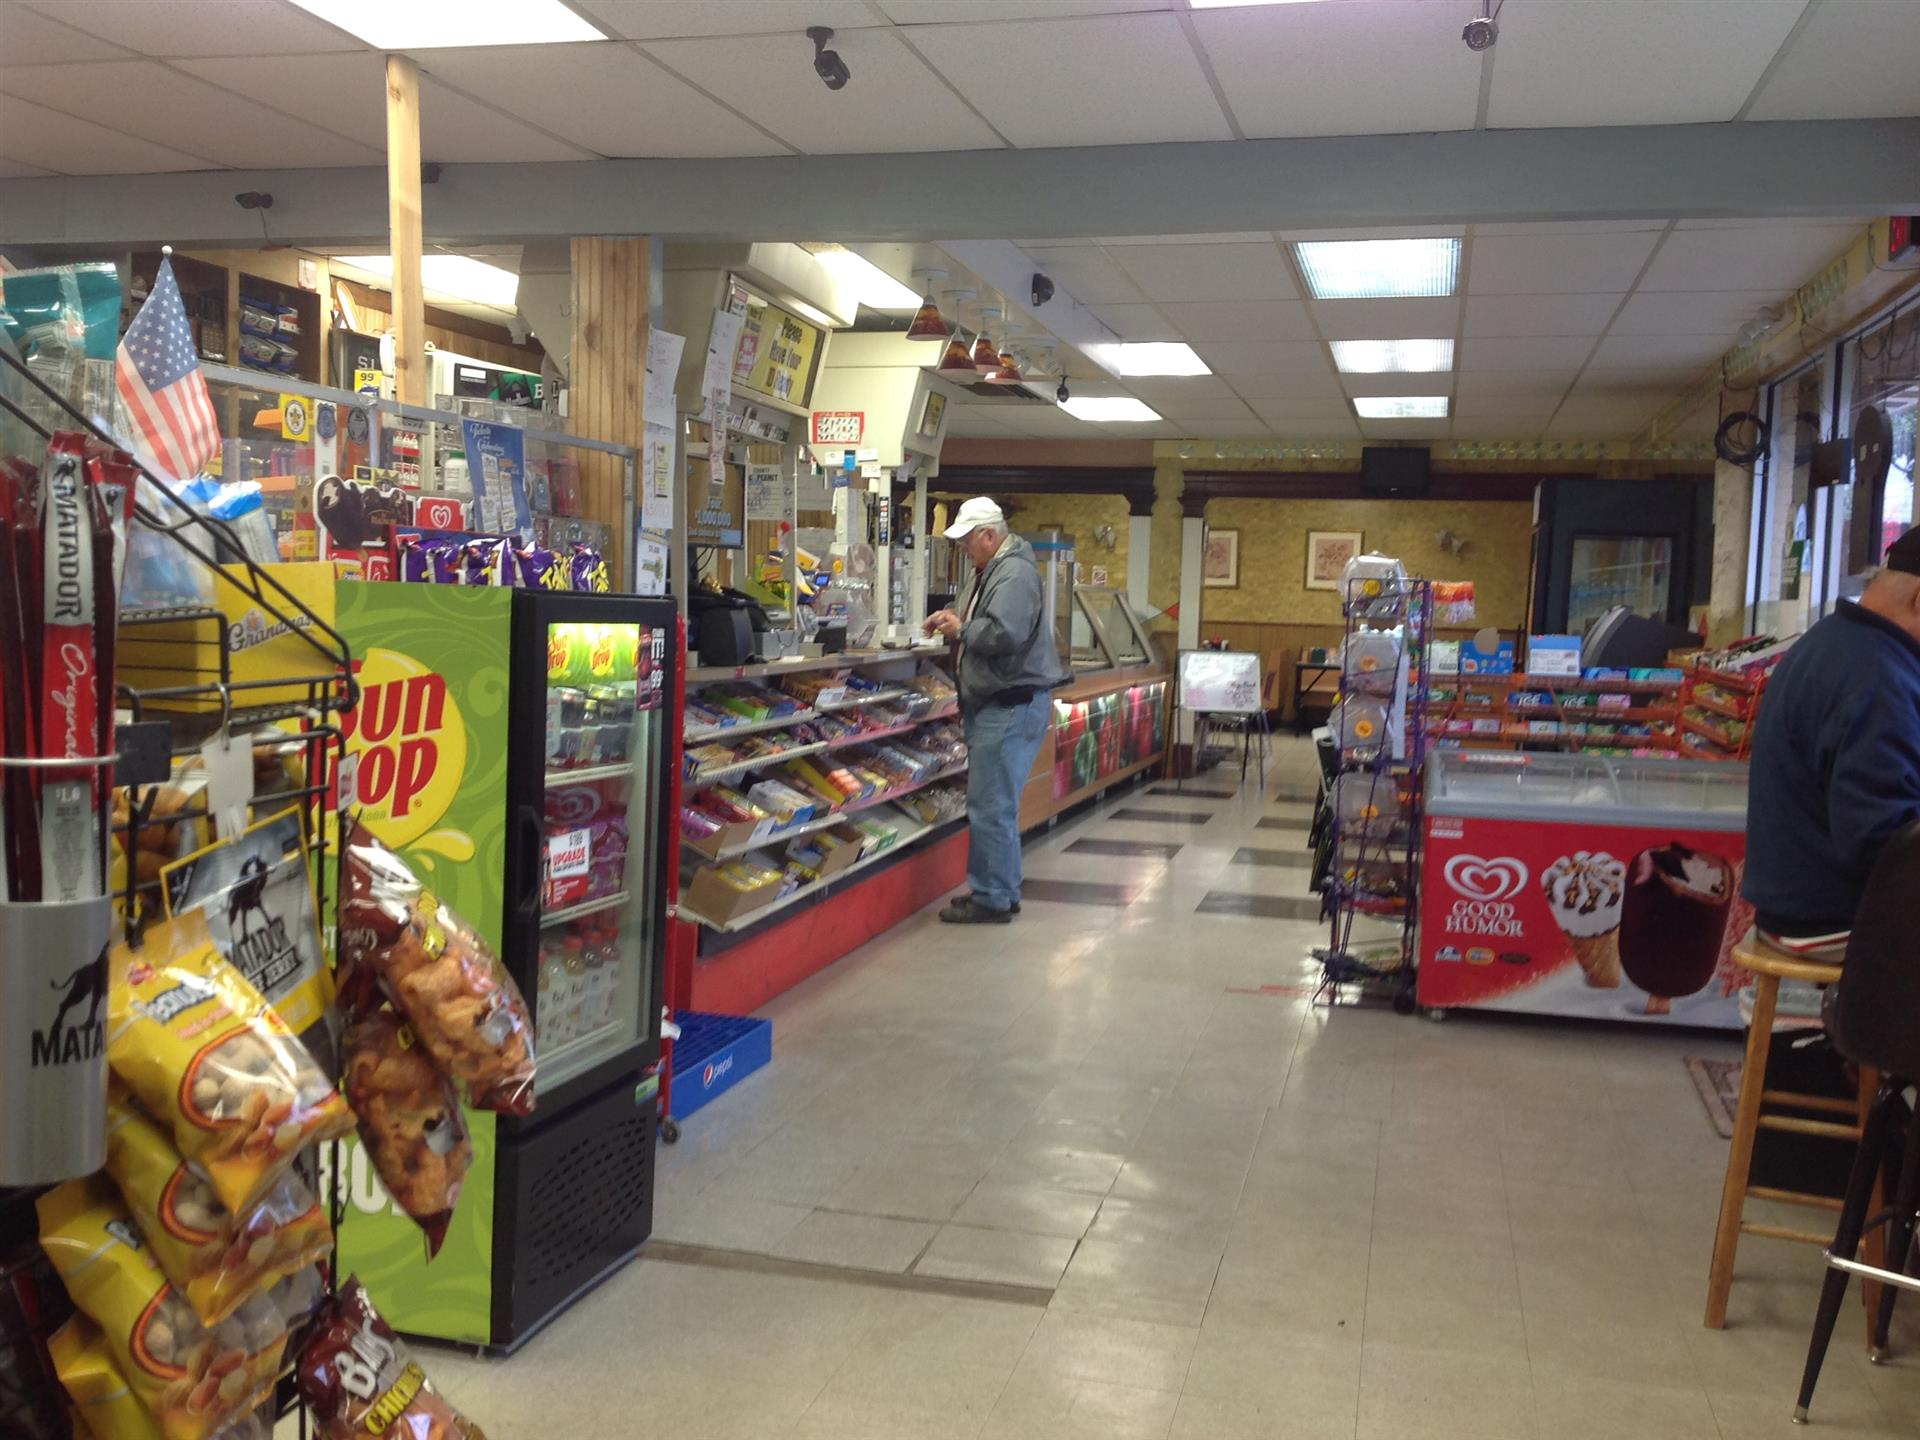 Inside Lee's Quick Stop